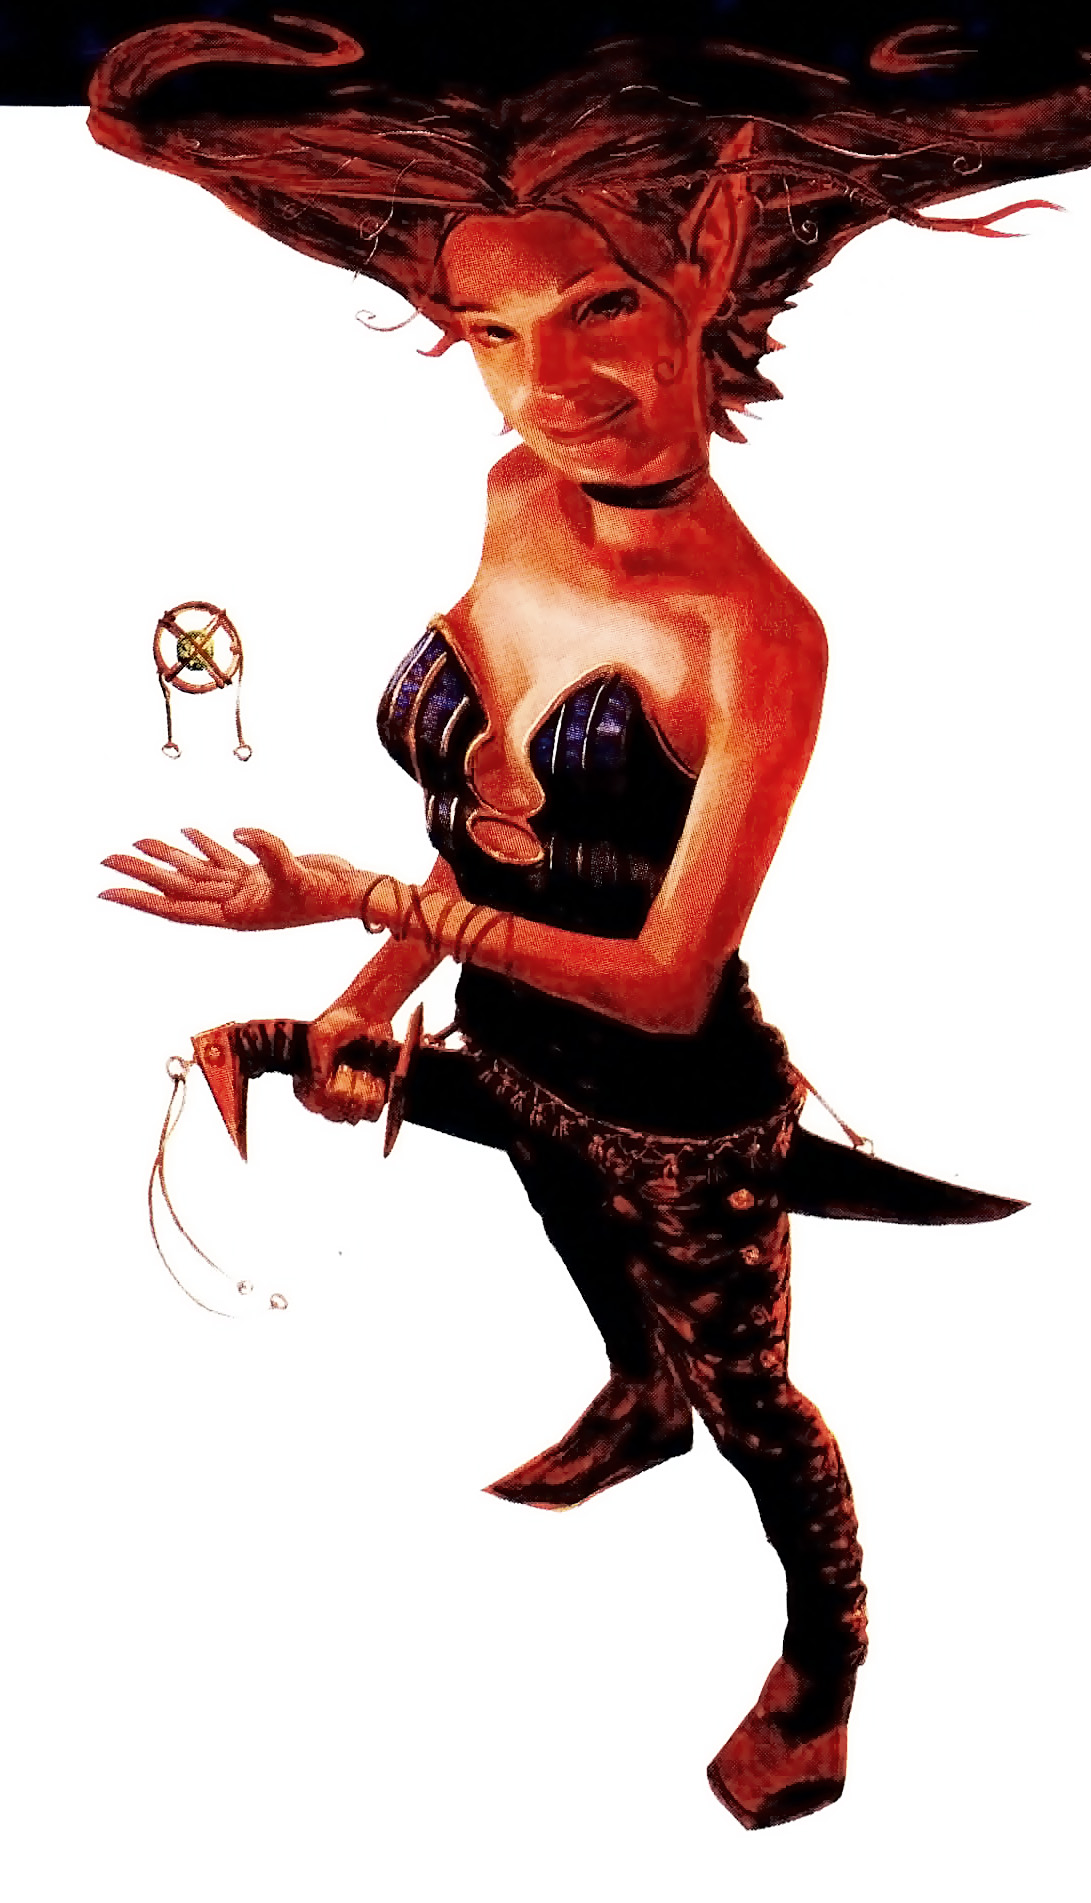 succubus Fall From Grace di Planescape: Torment - by Scott M. Fischer Dragon Magazine #264 (1999-10) © TSR, Wizards of the Coast